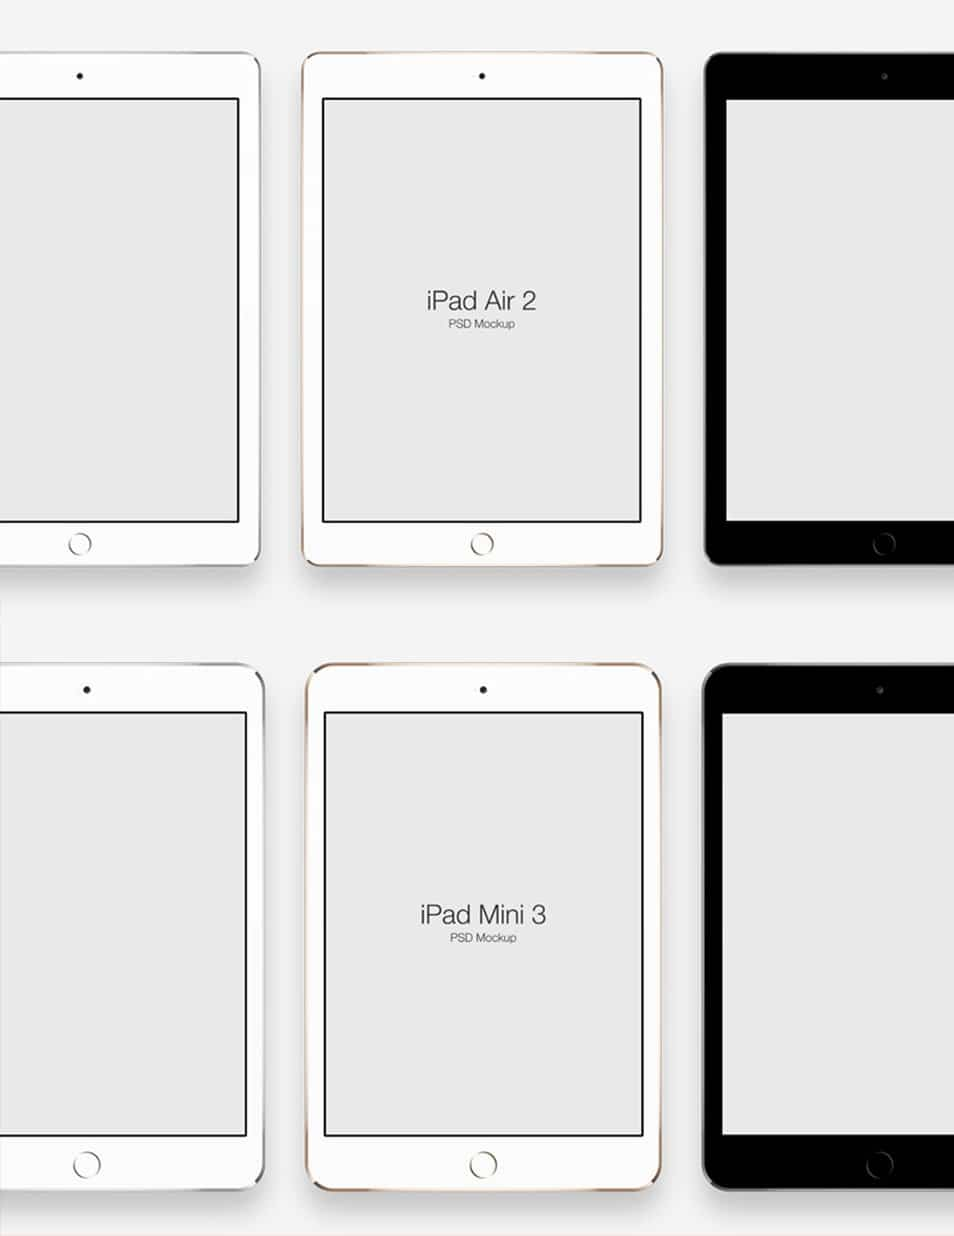 iPad Air 2 & iPad Mini 3 Mockups